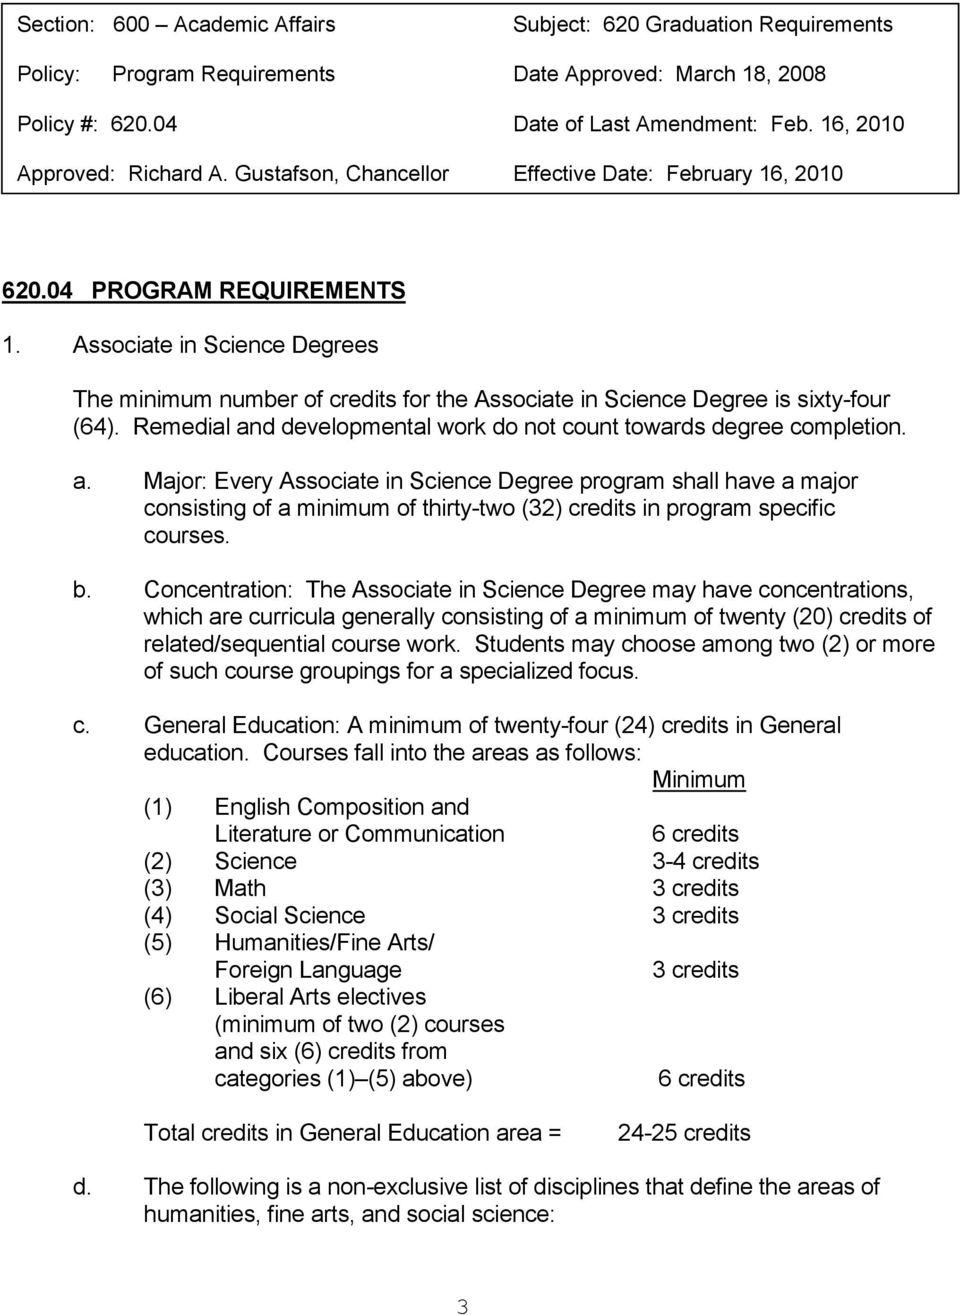 Remedial and developmental work do not count towards degree completion. a. Major: Every Associate in Science Degree program shall have a major consisting of a minimum of thirty-two (32) credits in program specific courses.